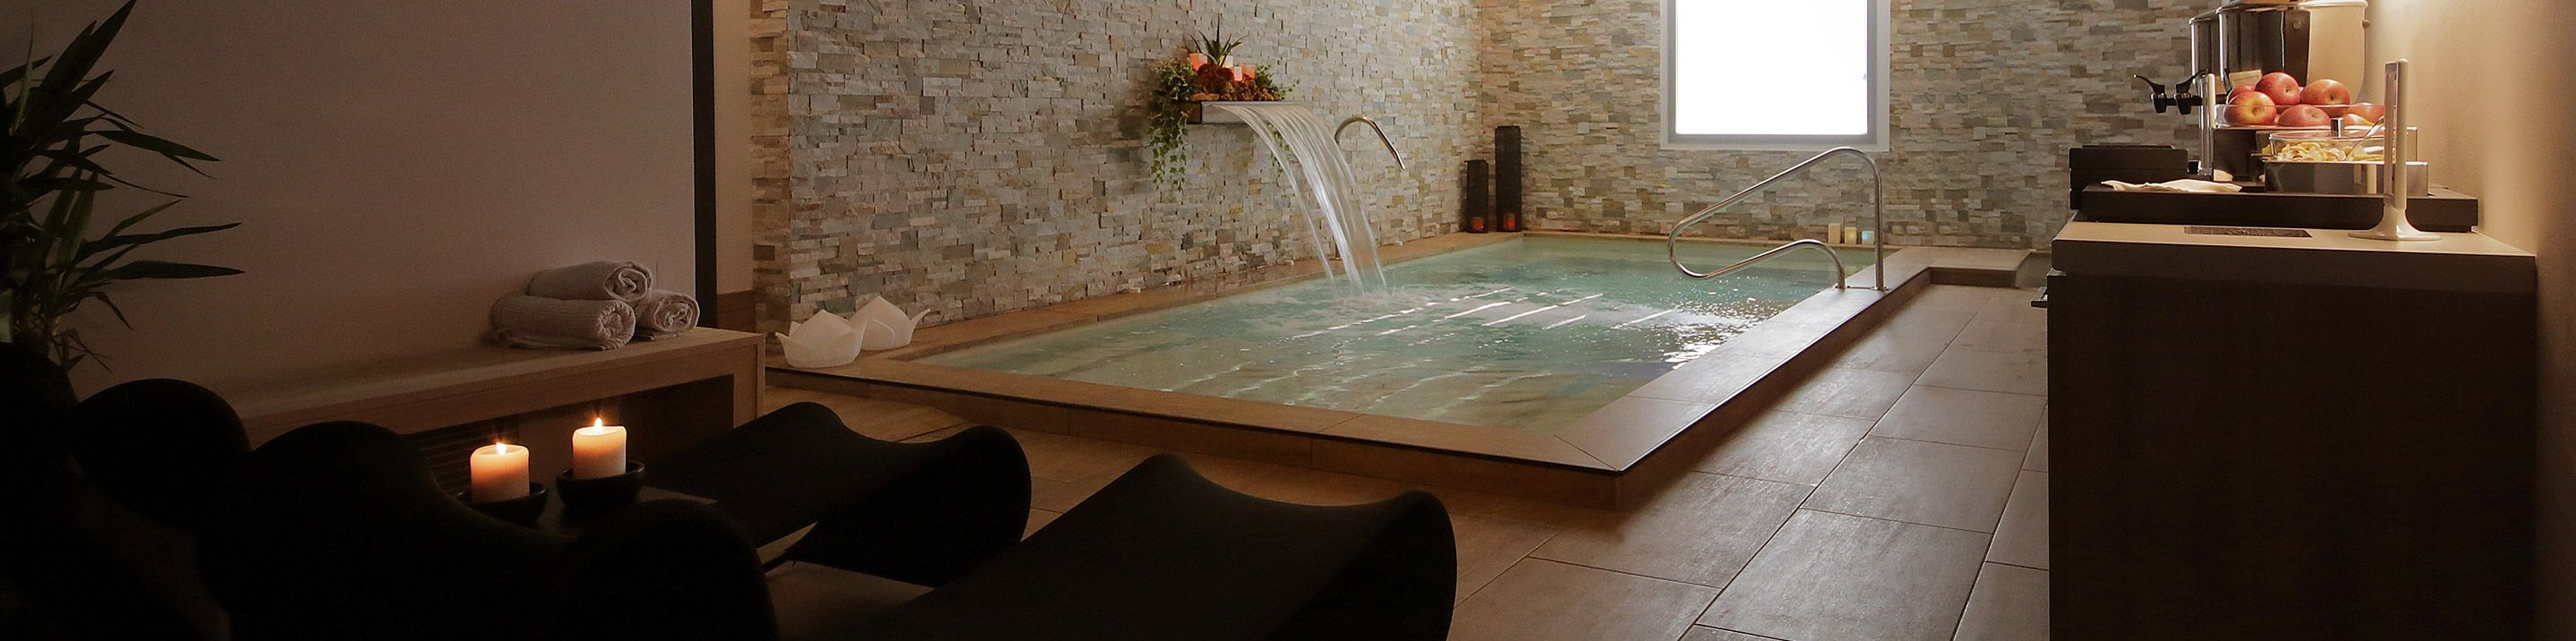 Hotel Bramante SPA ****